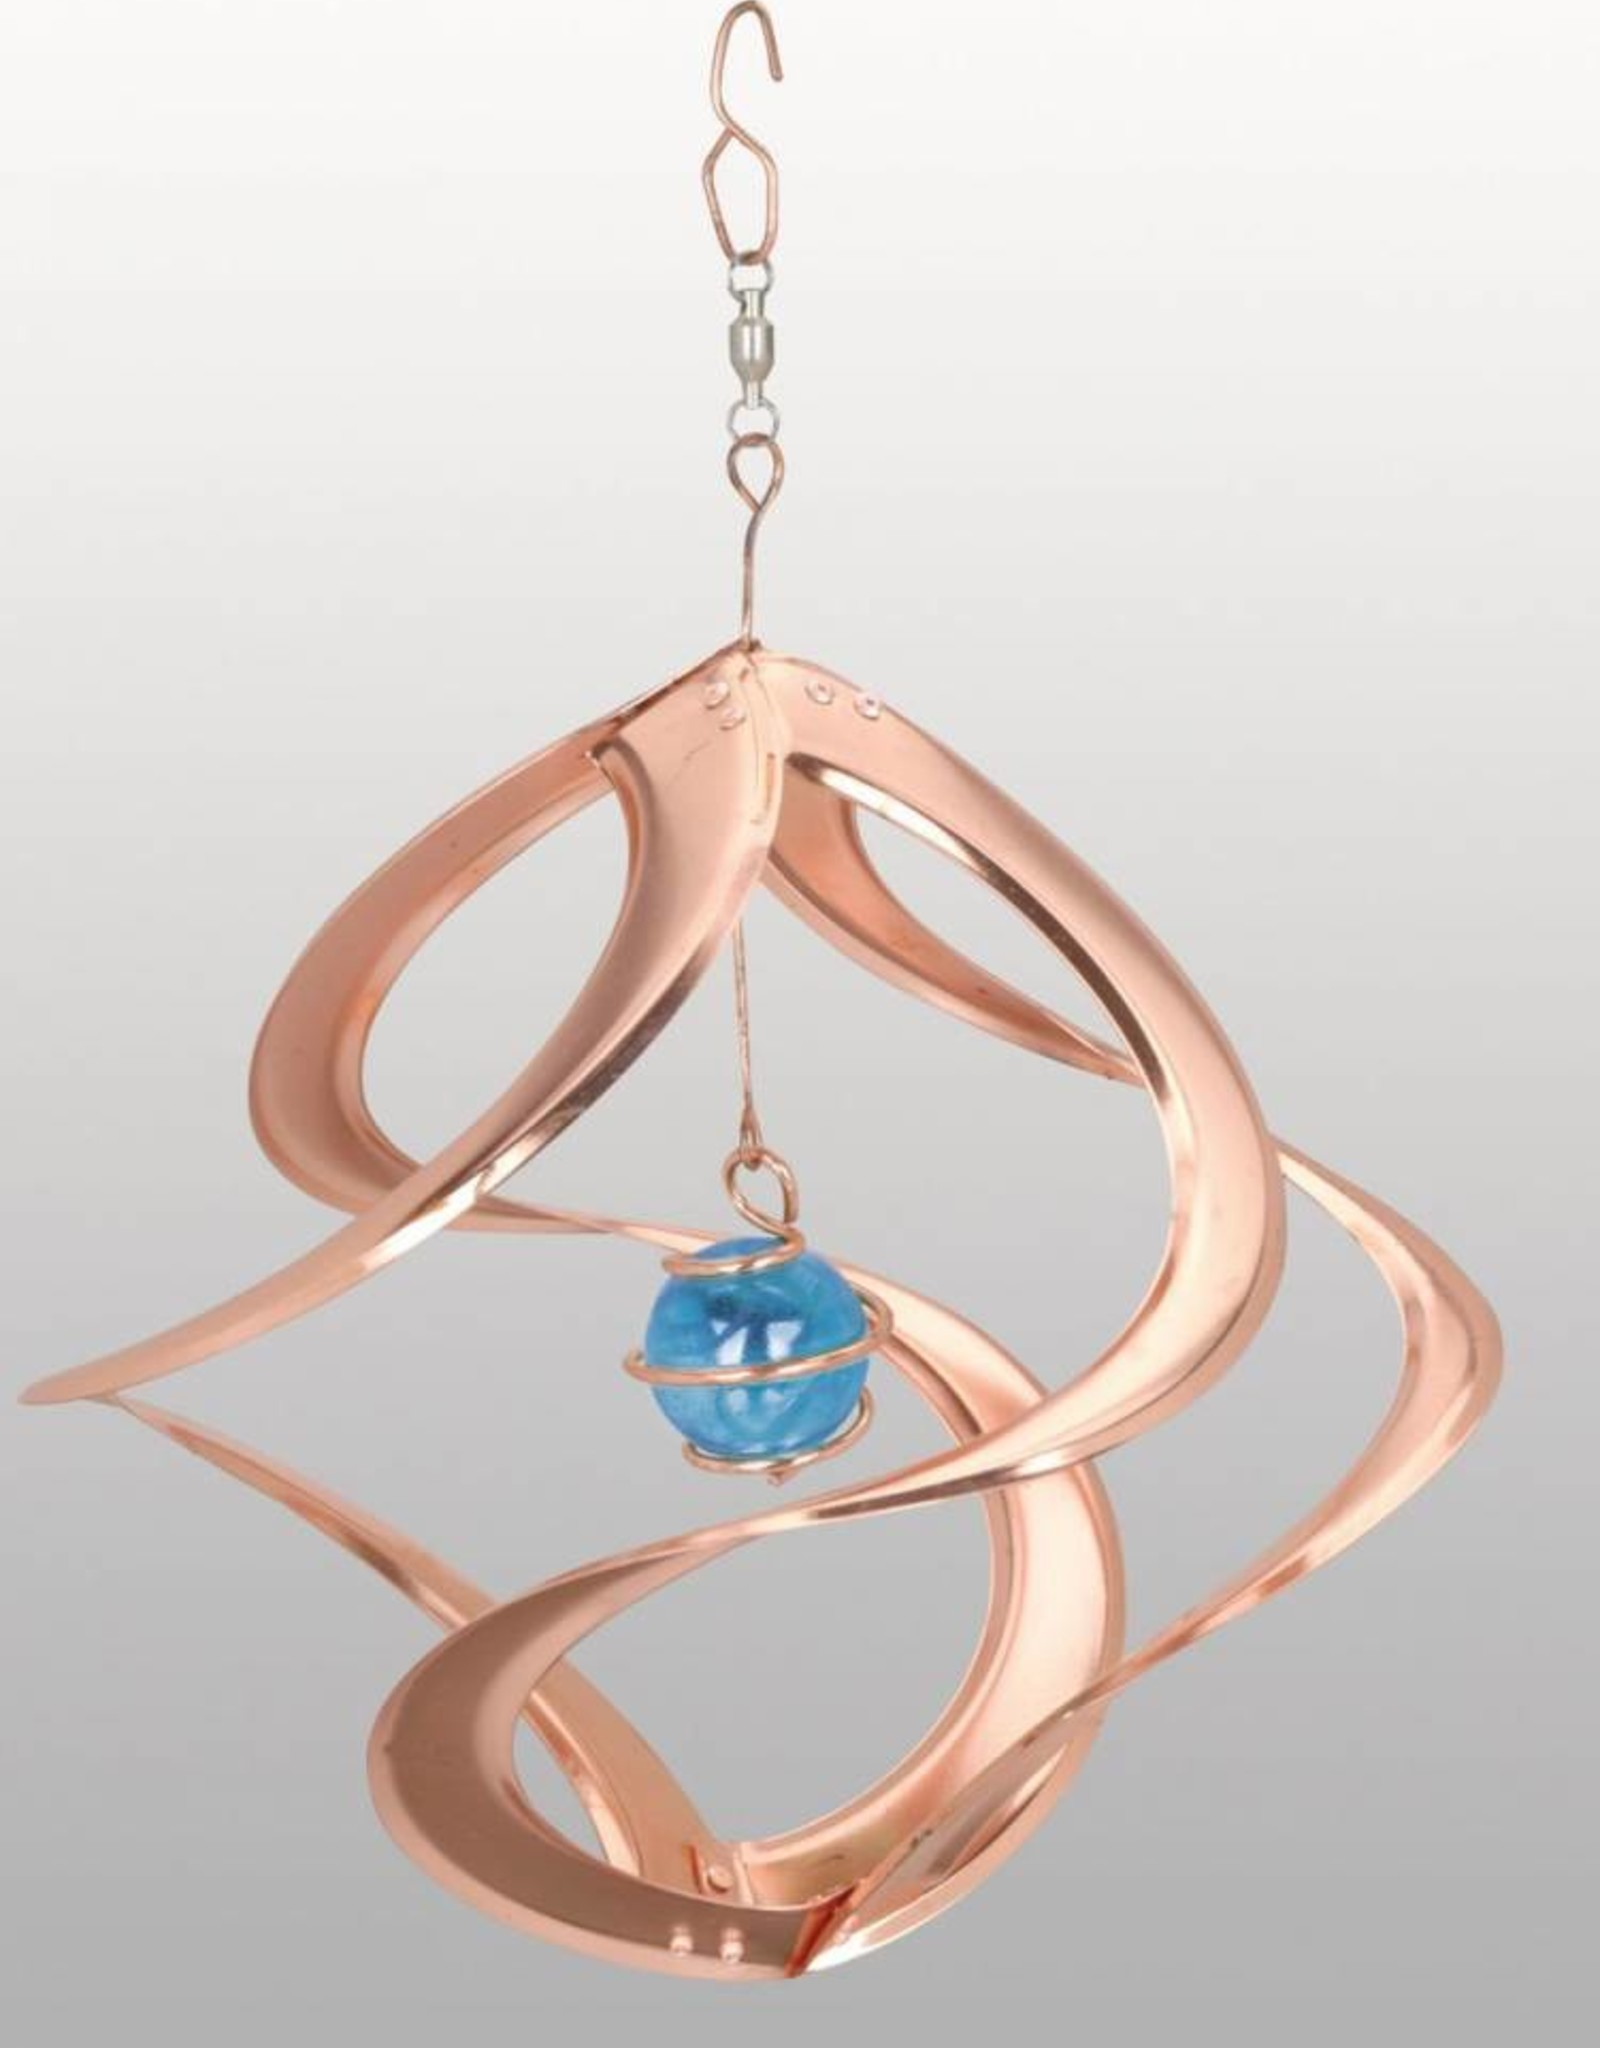 11 Inch Copper with Blue Glass